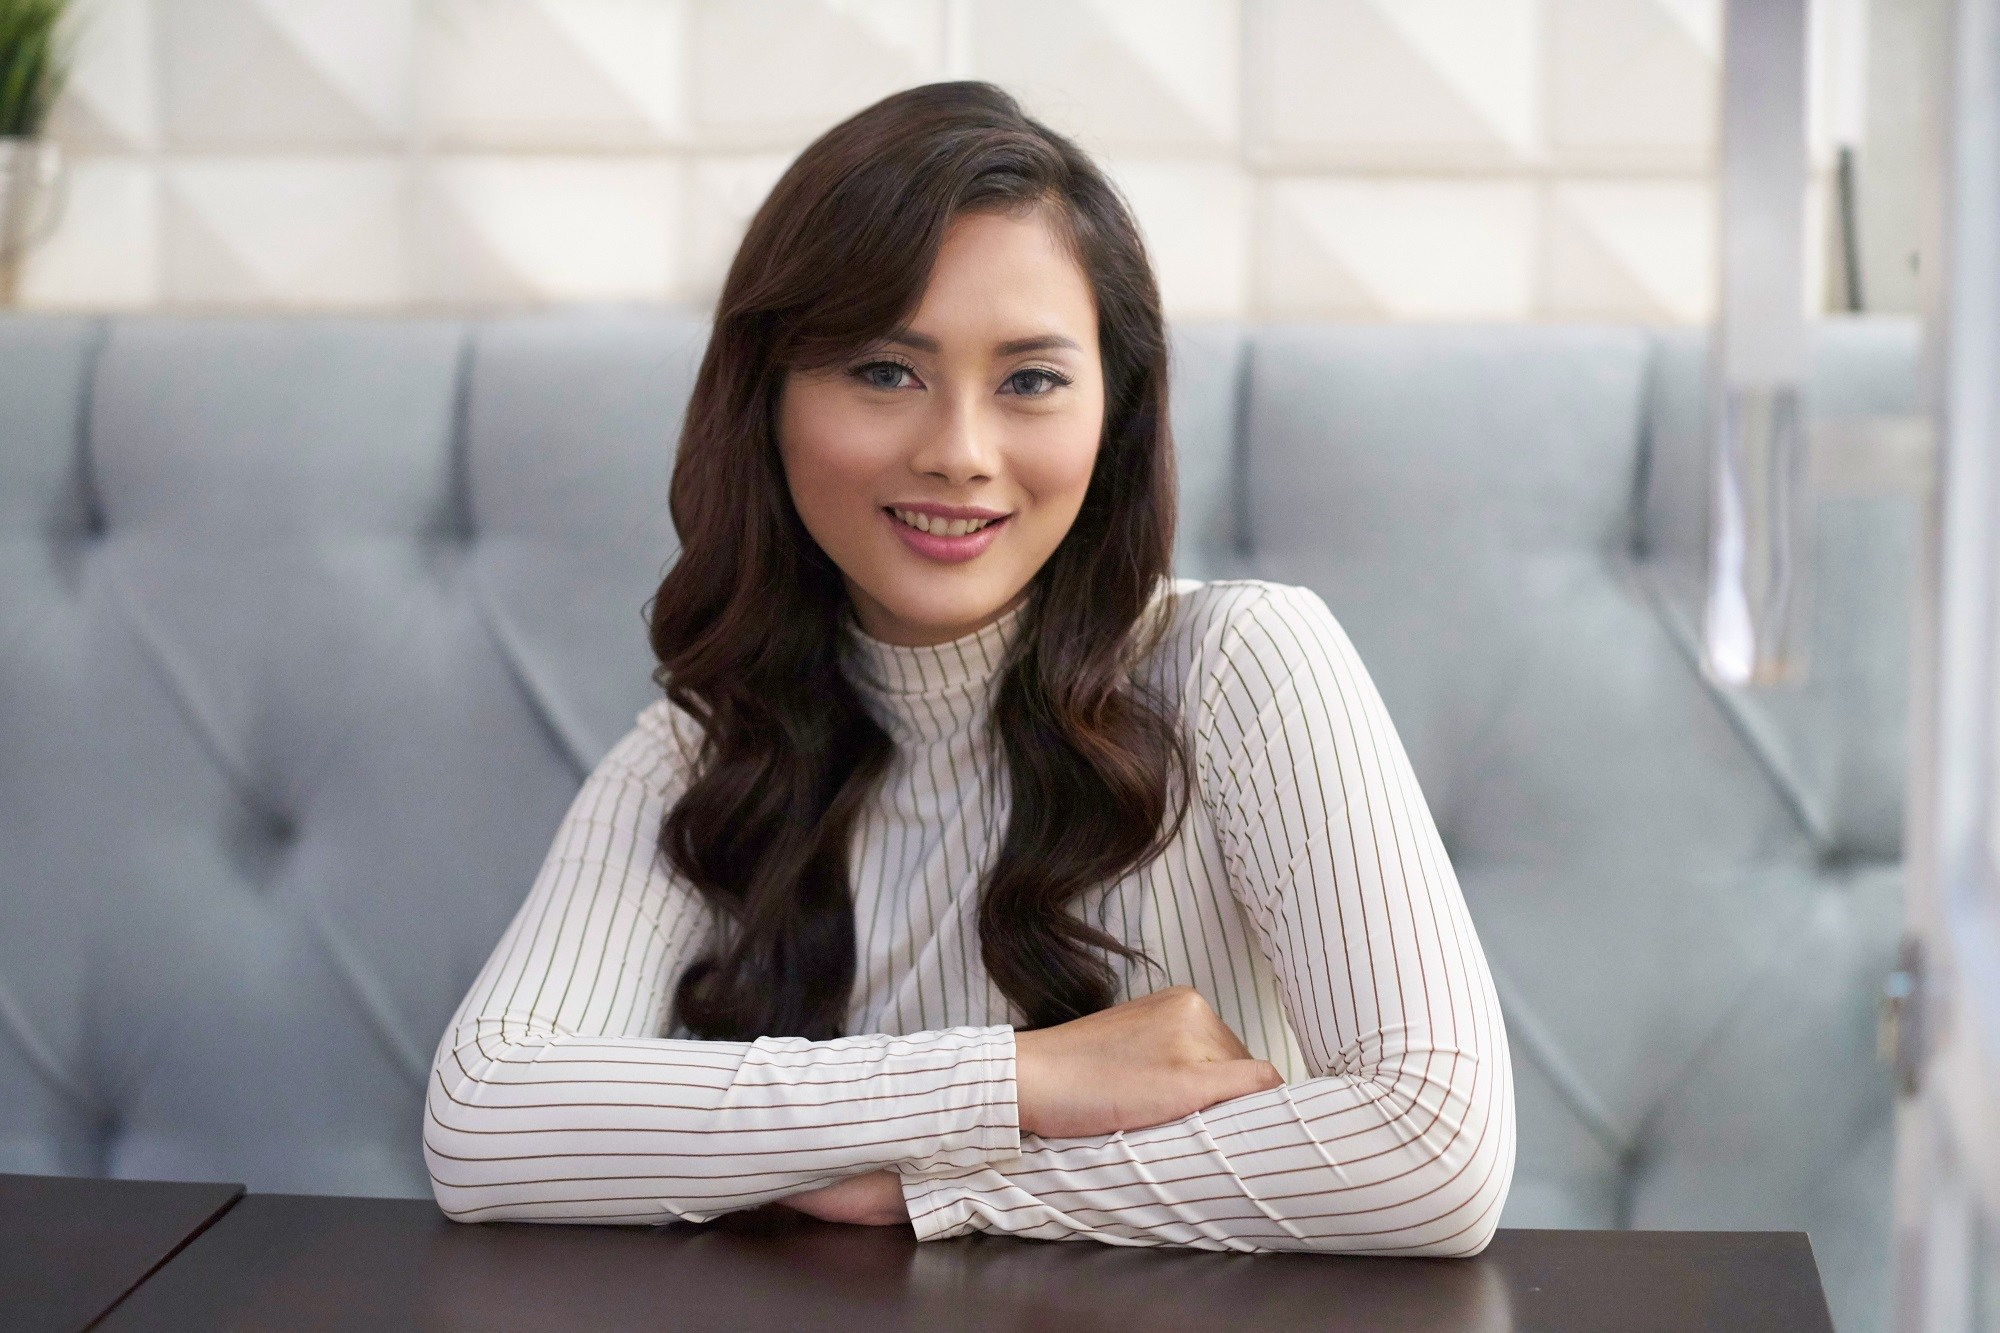 Oily hair: Asian woman with long dark wavy hair wearing a white long-sleeved top sitting on a sofa